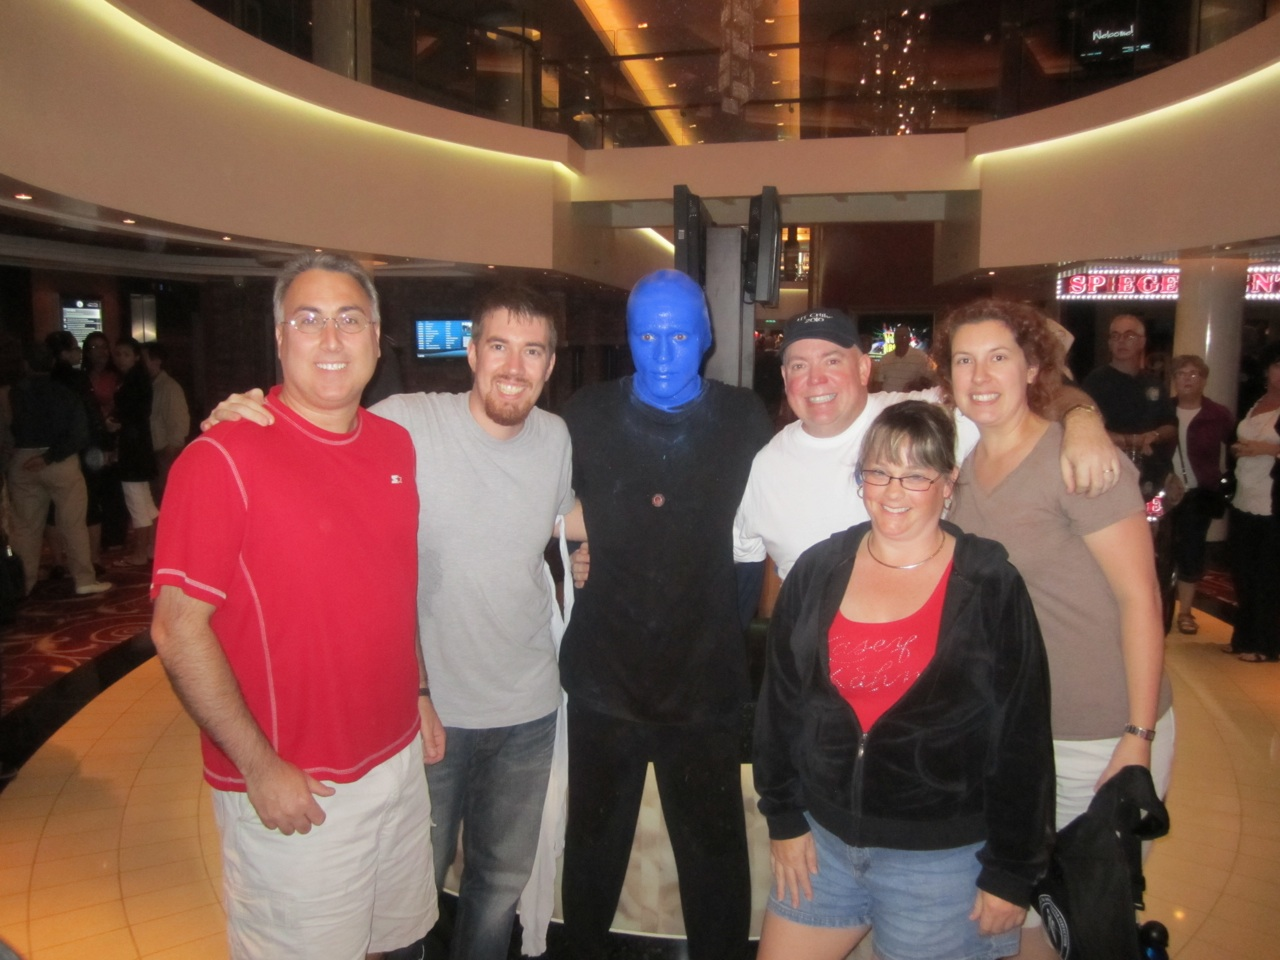 Blue Man Group Was Onboard. The Show Was Awesome As Ever!